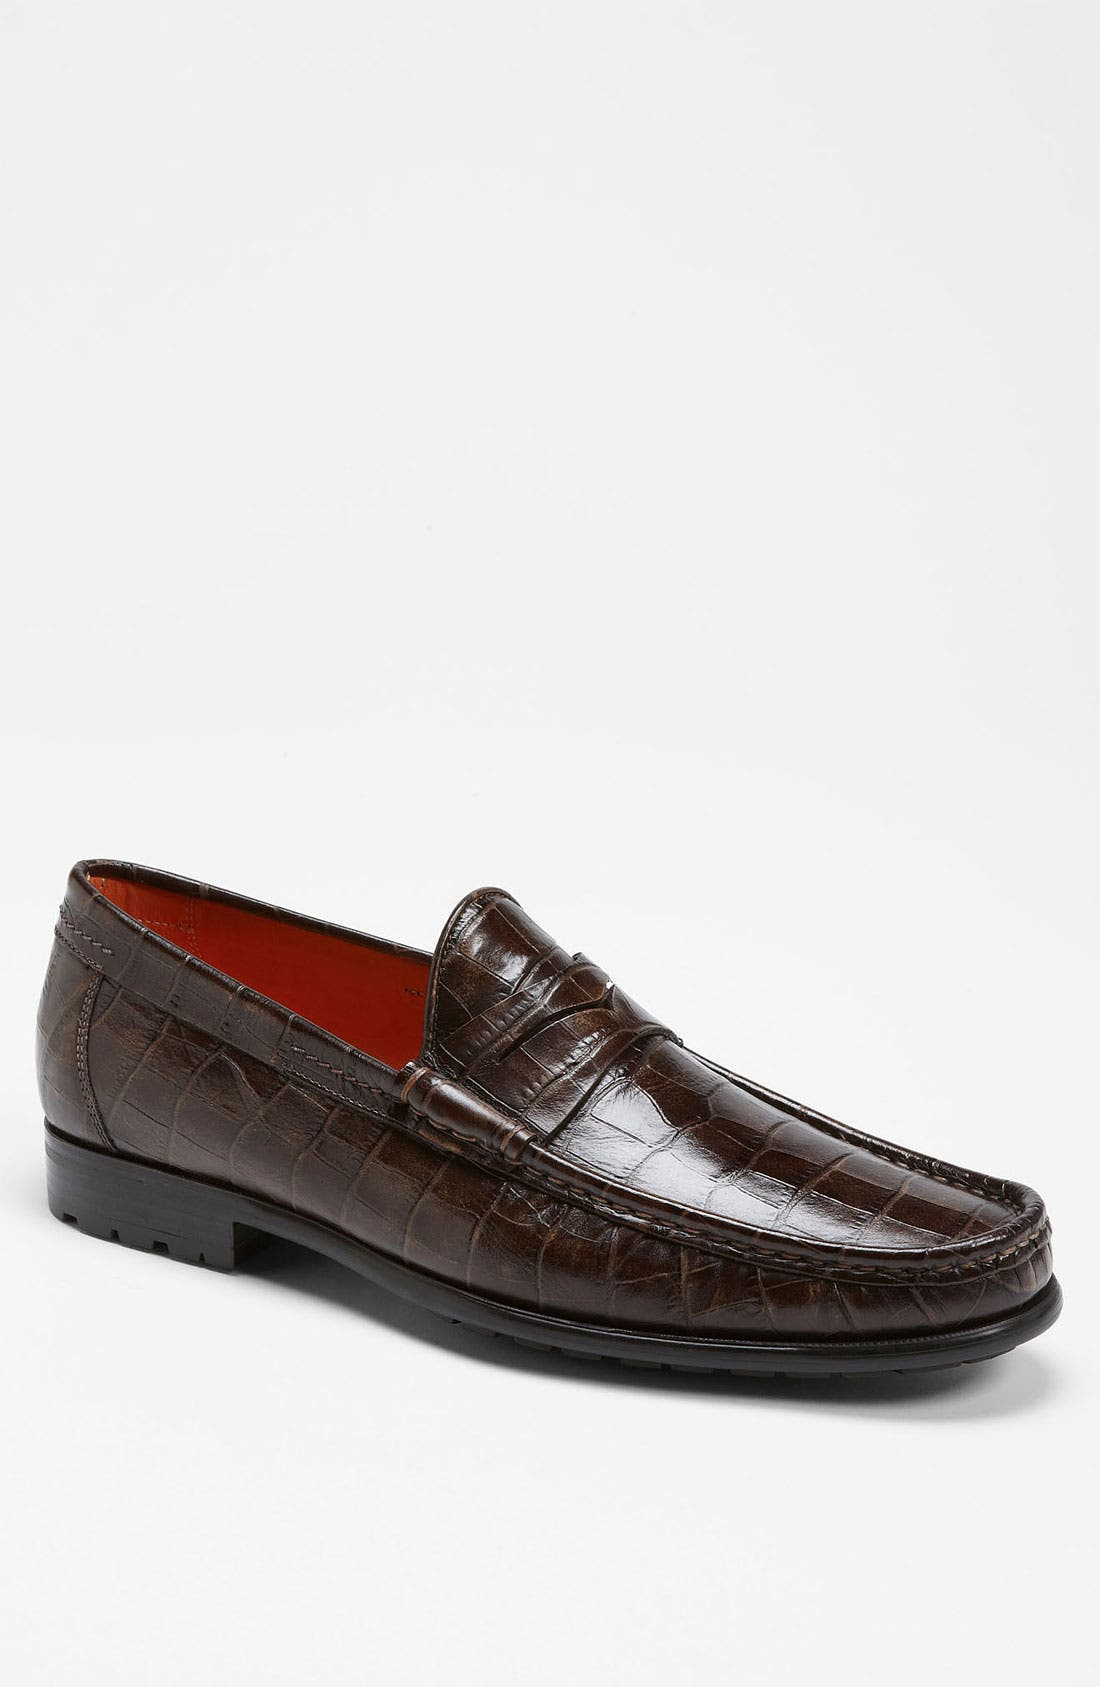 Alternate Image 1 Selected - Santoni 'Quint' Penny Loafer